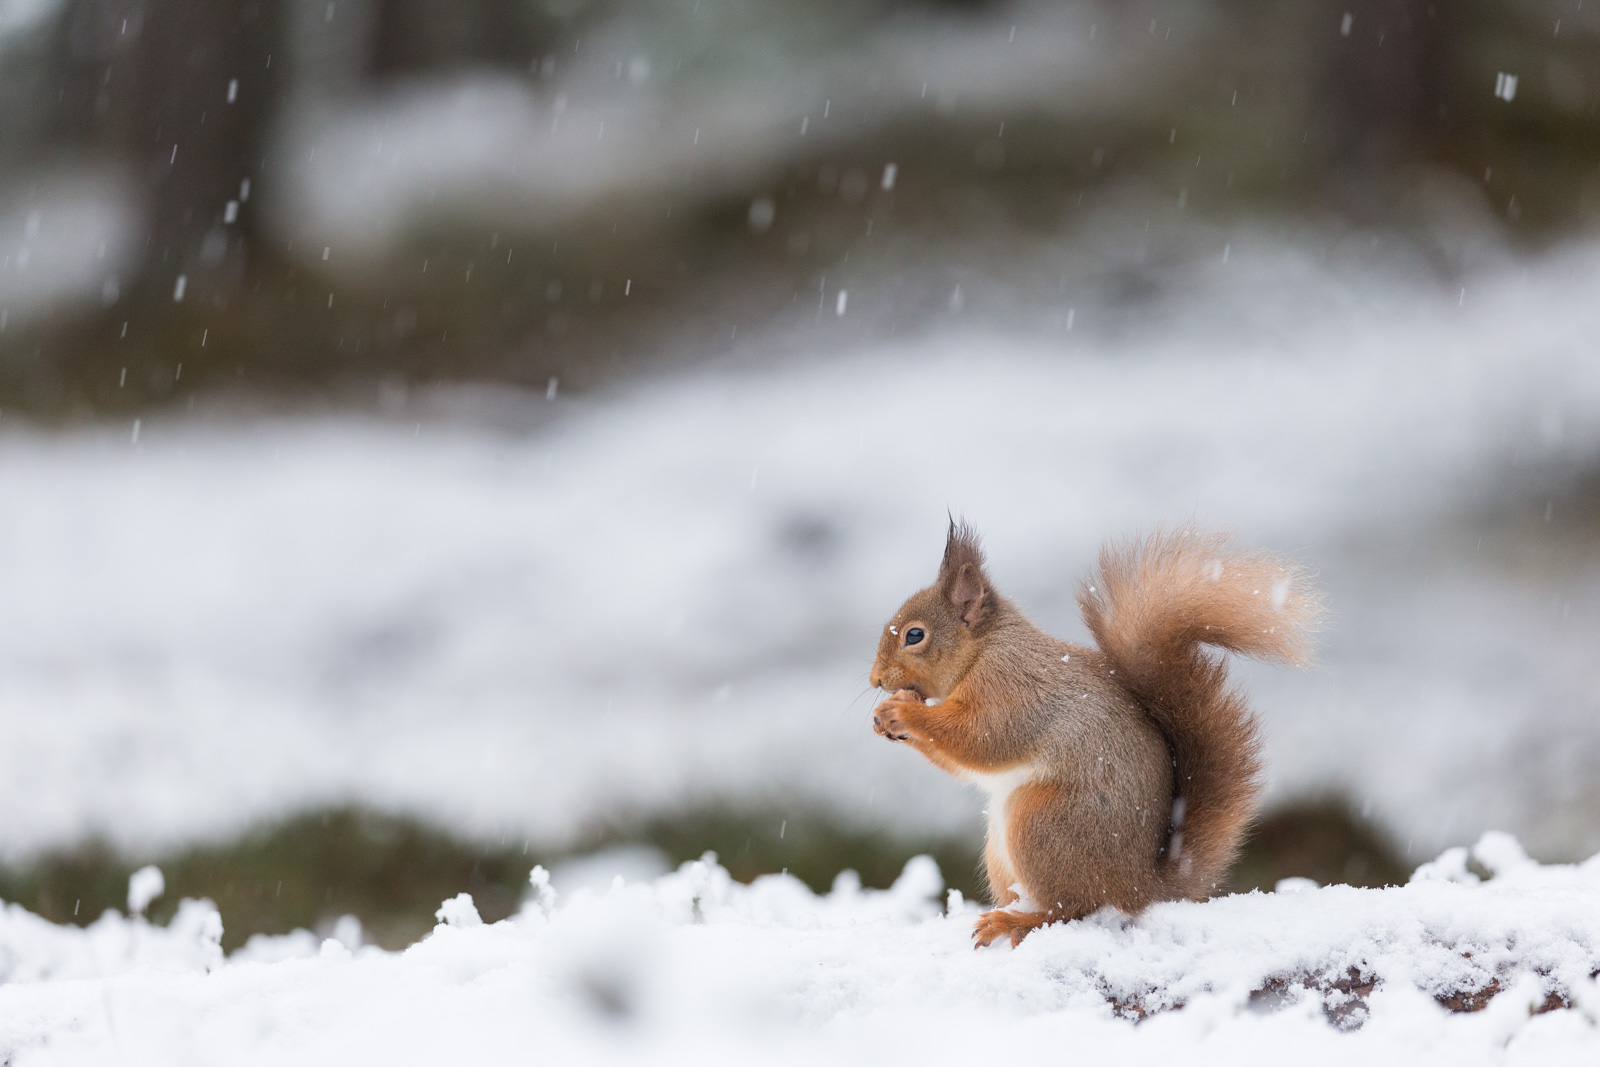 Sigma 500mm f/4 DG OS HSM Sport Lens - Sample image of red squirrel.